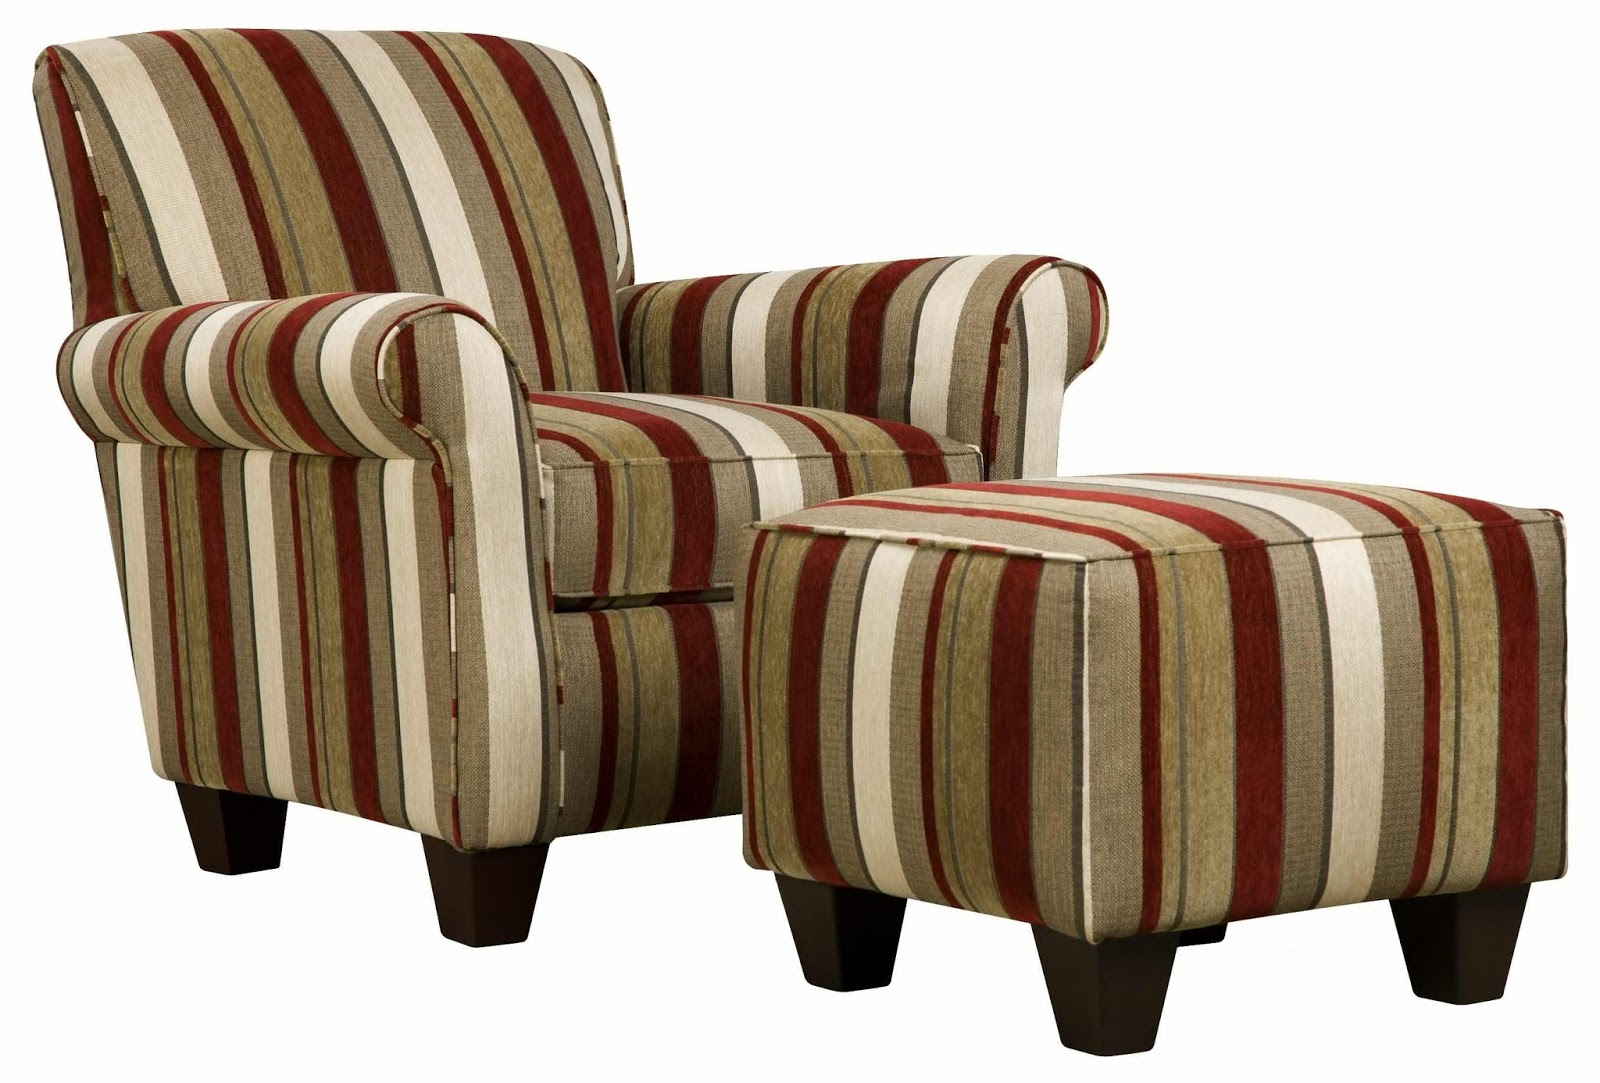 Living Room Chairs with Ottomans Large Style